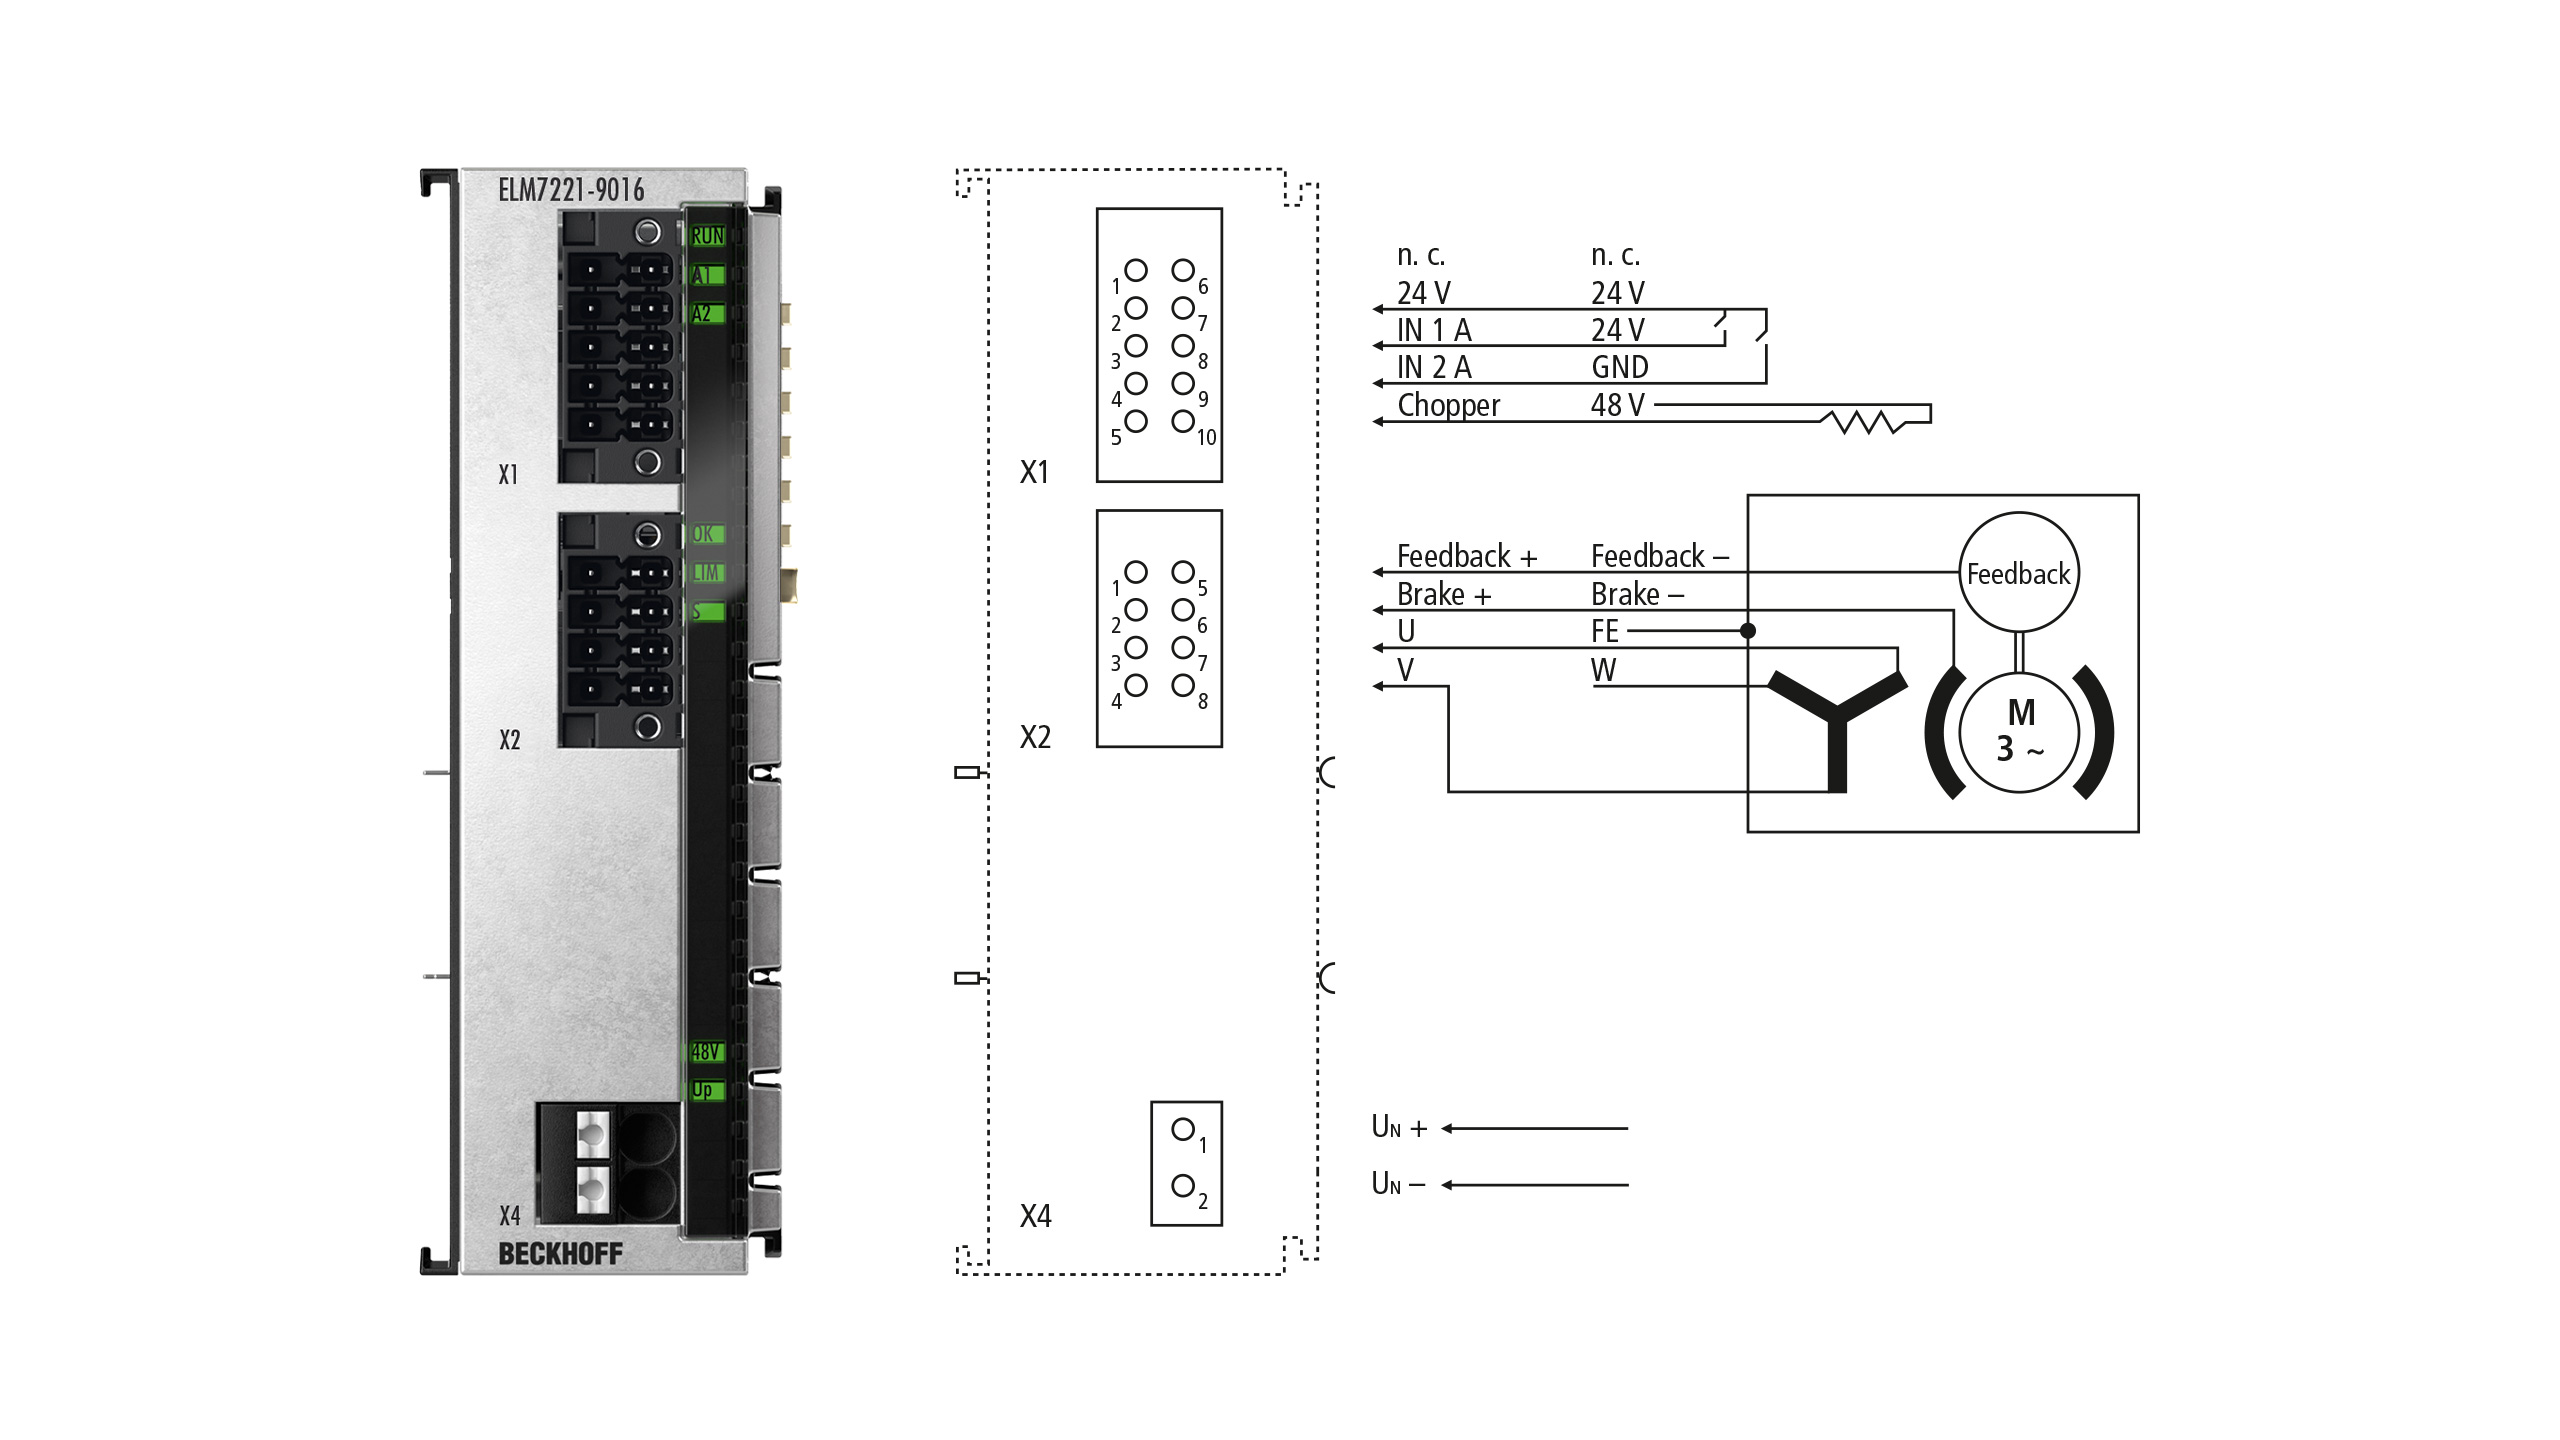 ELM7221-9016 | 1-channel servomotor terminal in metal housing, 48VDC, 8A(Irms), OCT, STO, TwinSAFE Logic